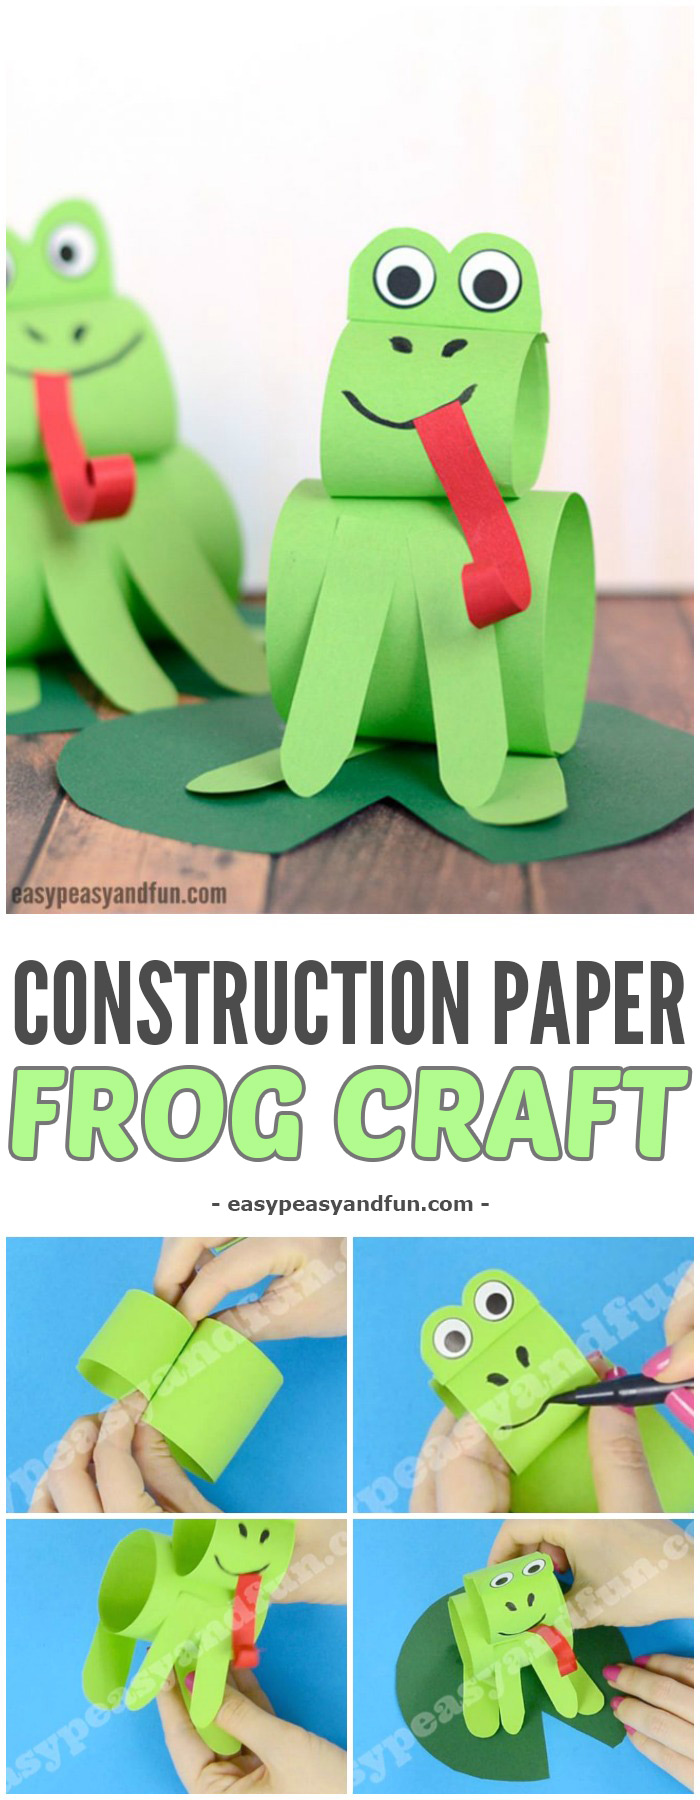 Paper Frog Craft For Kids Fun Spring Idea To Make